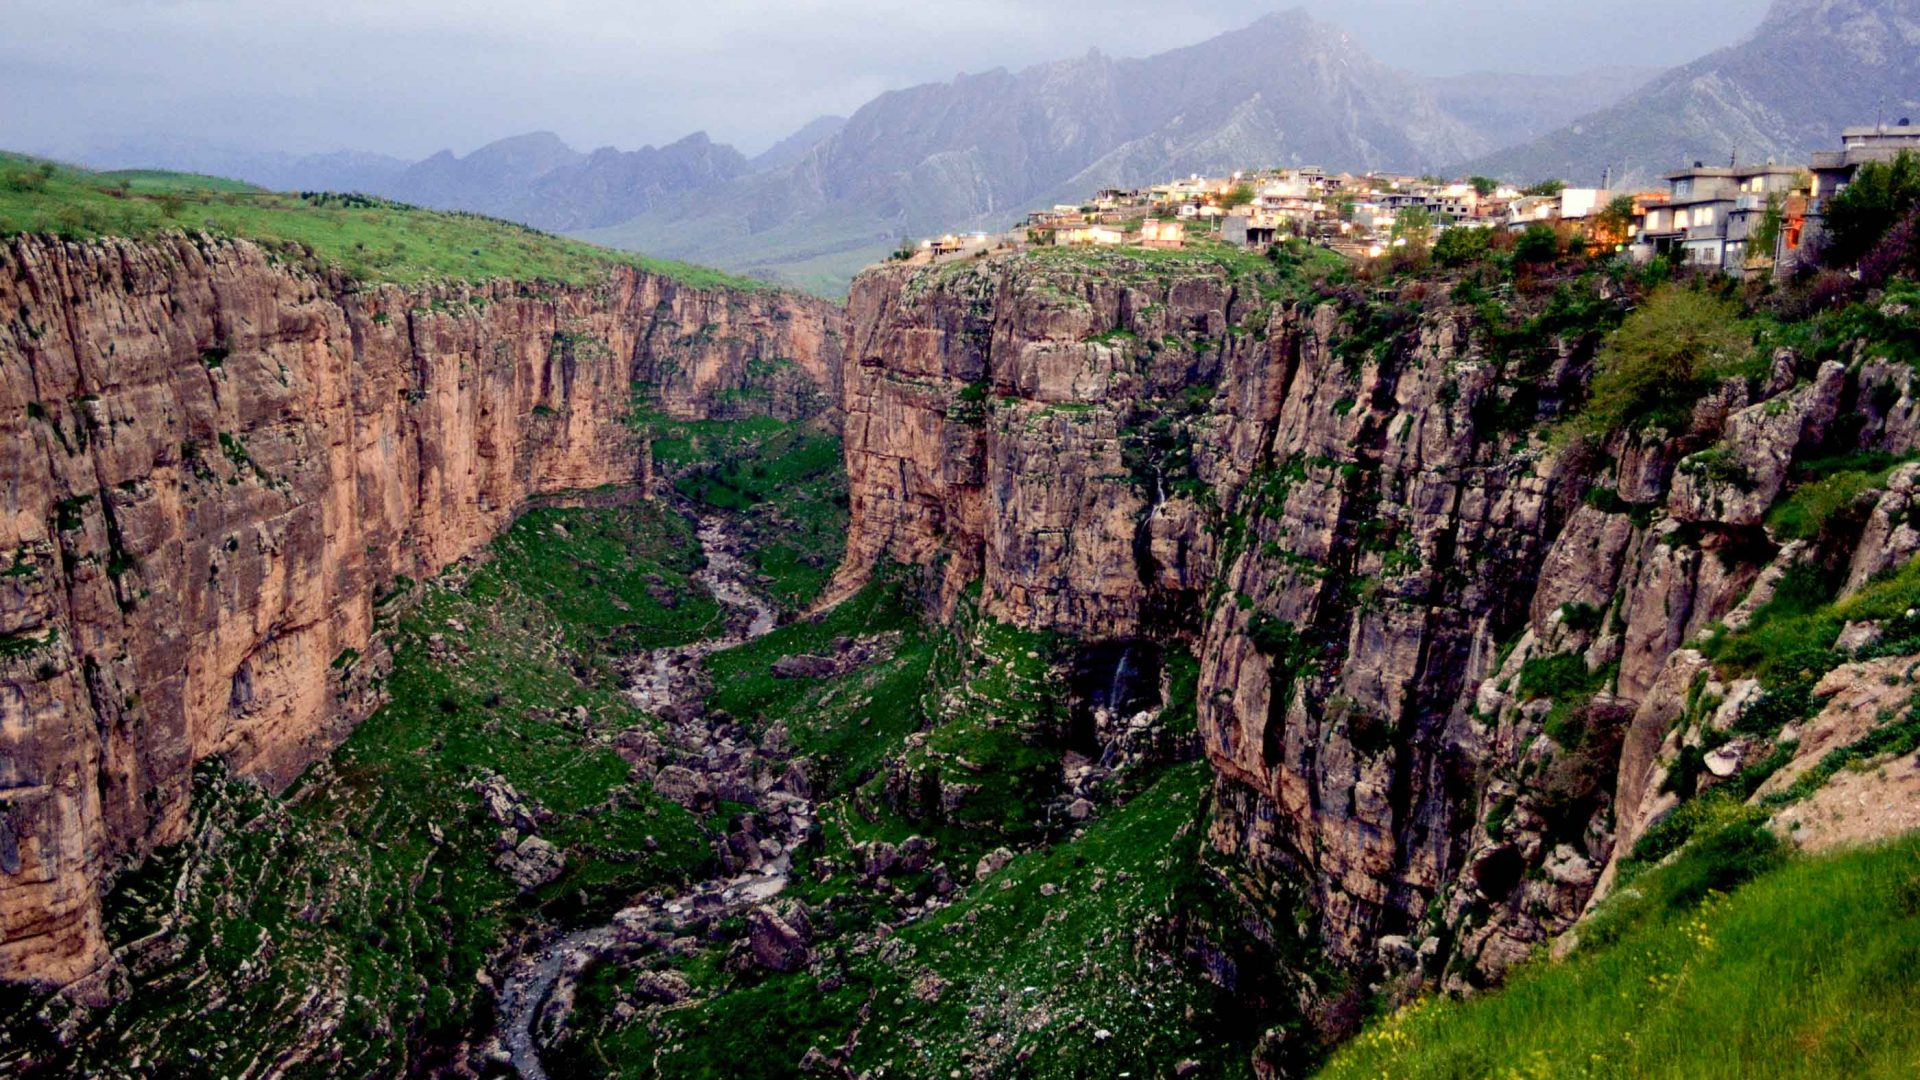 A small village sits above a dramatic escarpment in Iraqi Kurdistan.